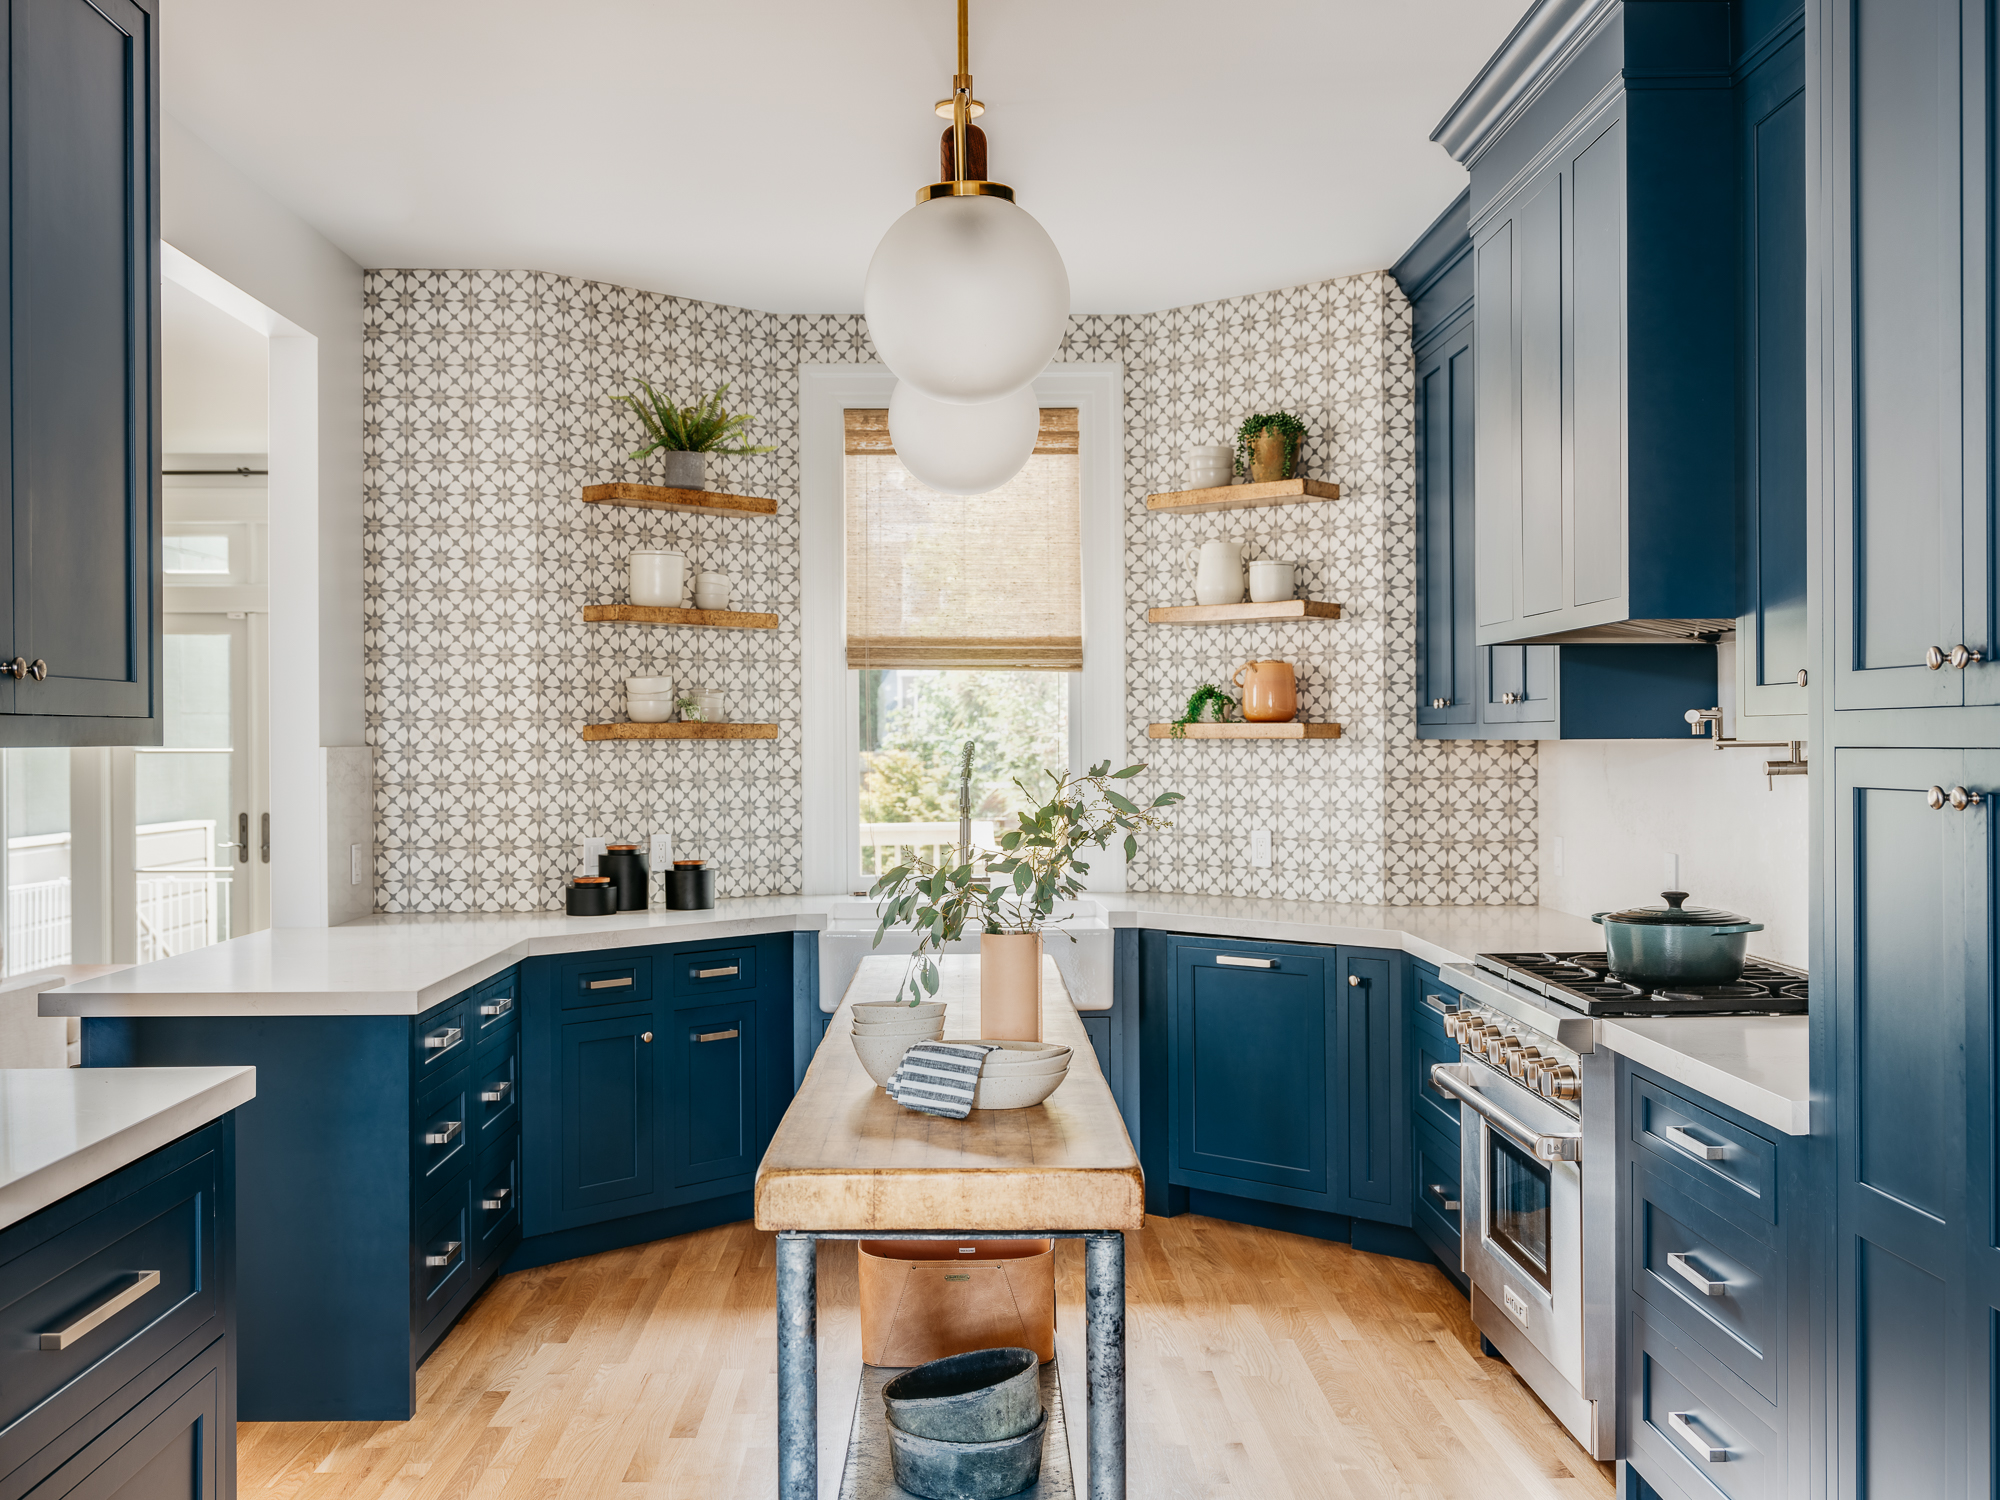 Blue and white kitchen with blue cabinets, patterned concrete tile backsplash. by IDF Studio